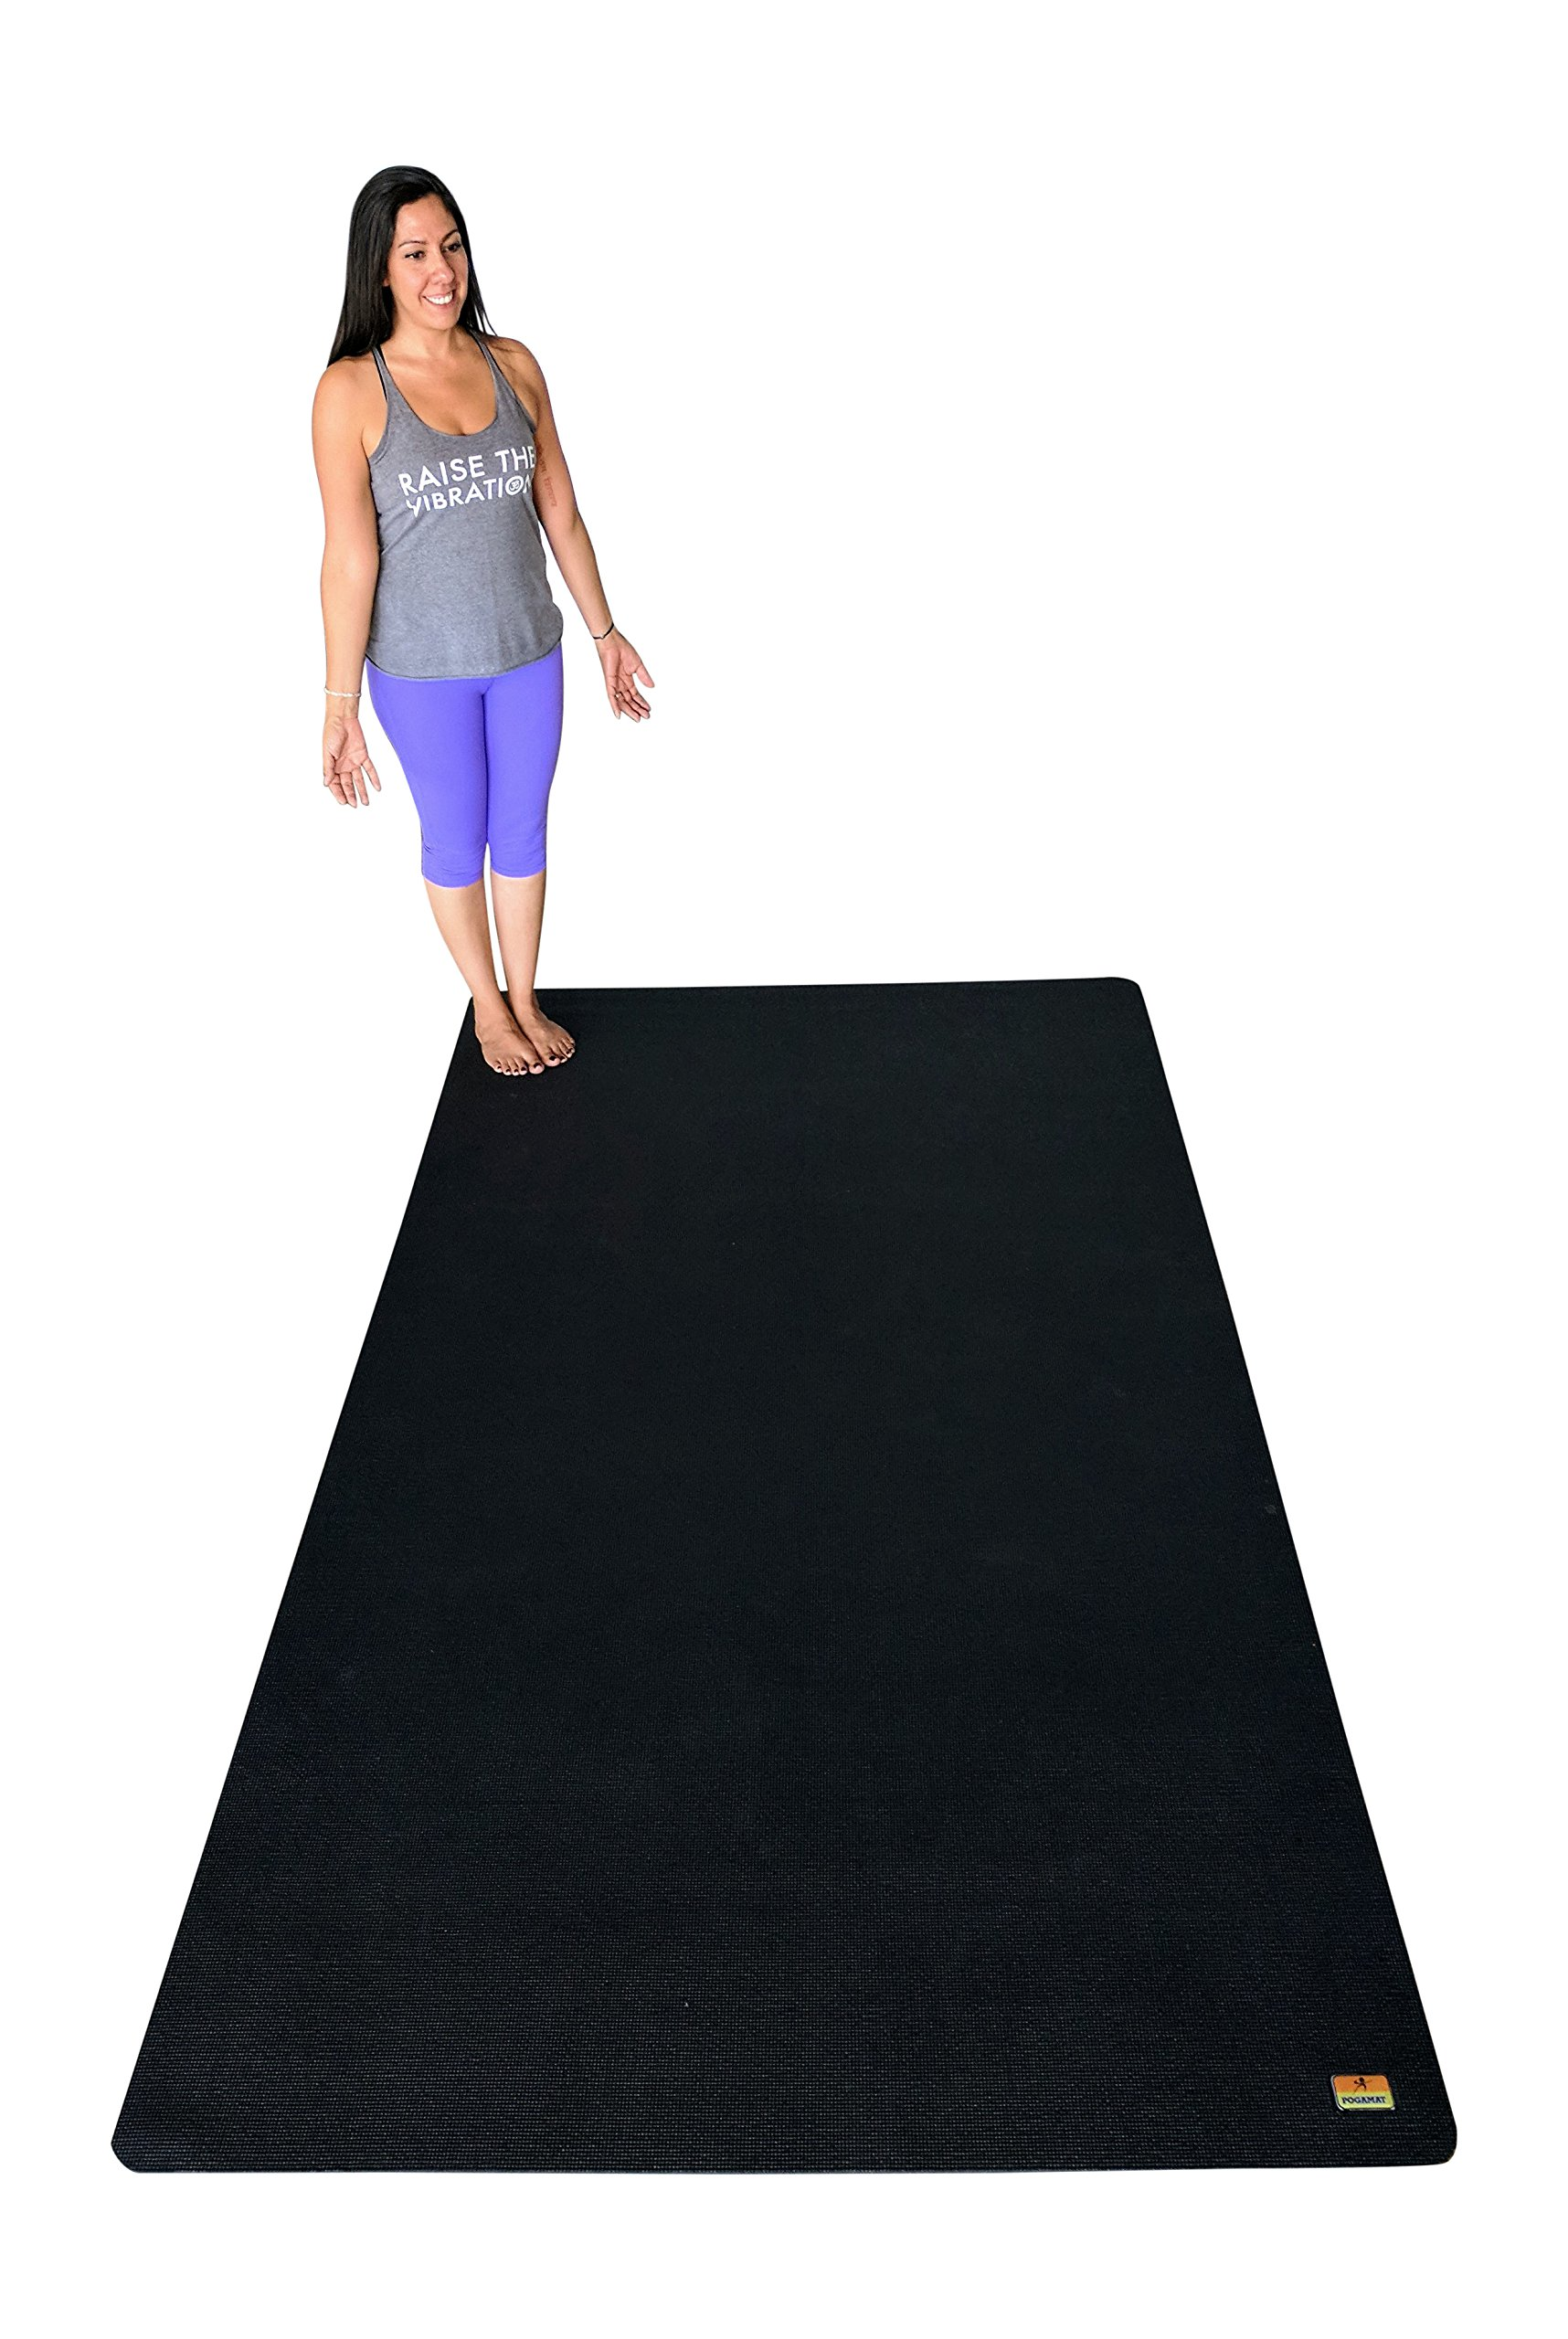 3X Large Yoga Mat And Stretching Mat - 9ft X 5ft x 7mm Thick (108''x 60'') Anti-Tear & Non Slip Yoga Exercise Mat - Extra Long Memory Foam. Pogamat Yoga Mats For Yoga & Cardio Fitness Mat WITHOUT Shoes by Pogamat (Image #3)